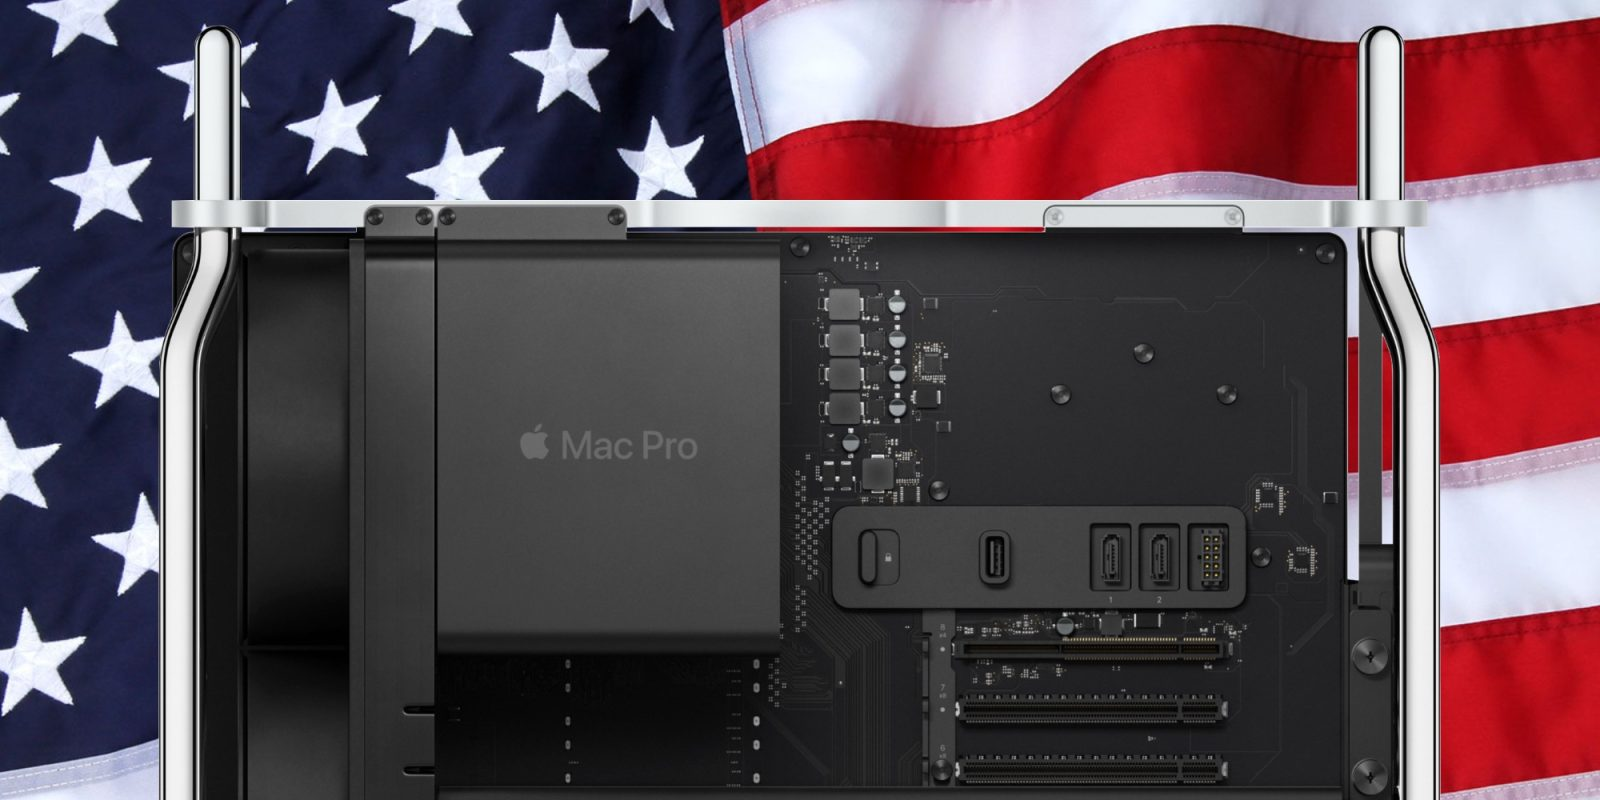 2019 Mac Pro will be made in United States after facing Trump tariff uncertainty, doubles American-made component value over last model